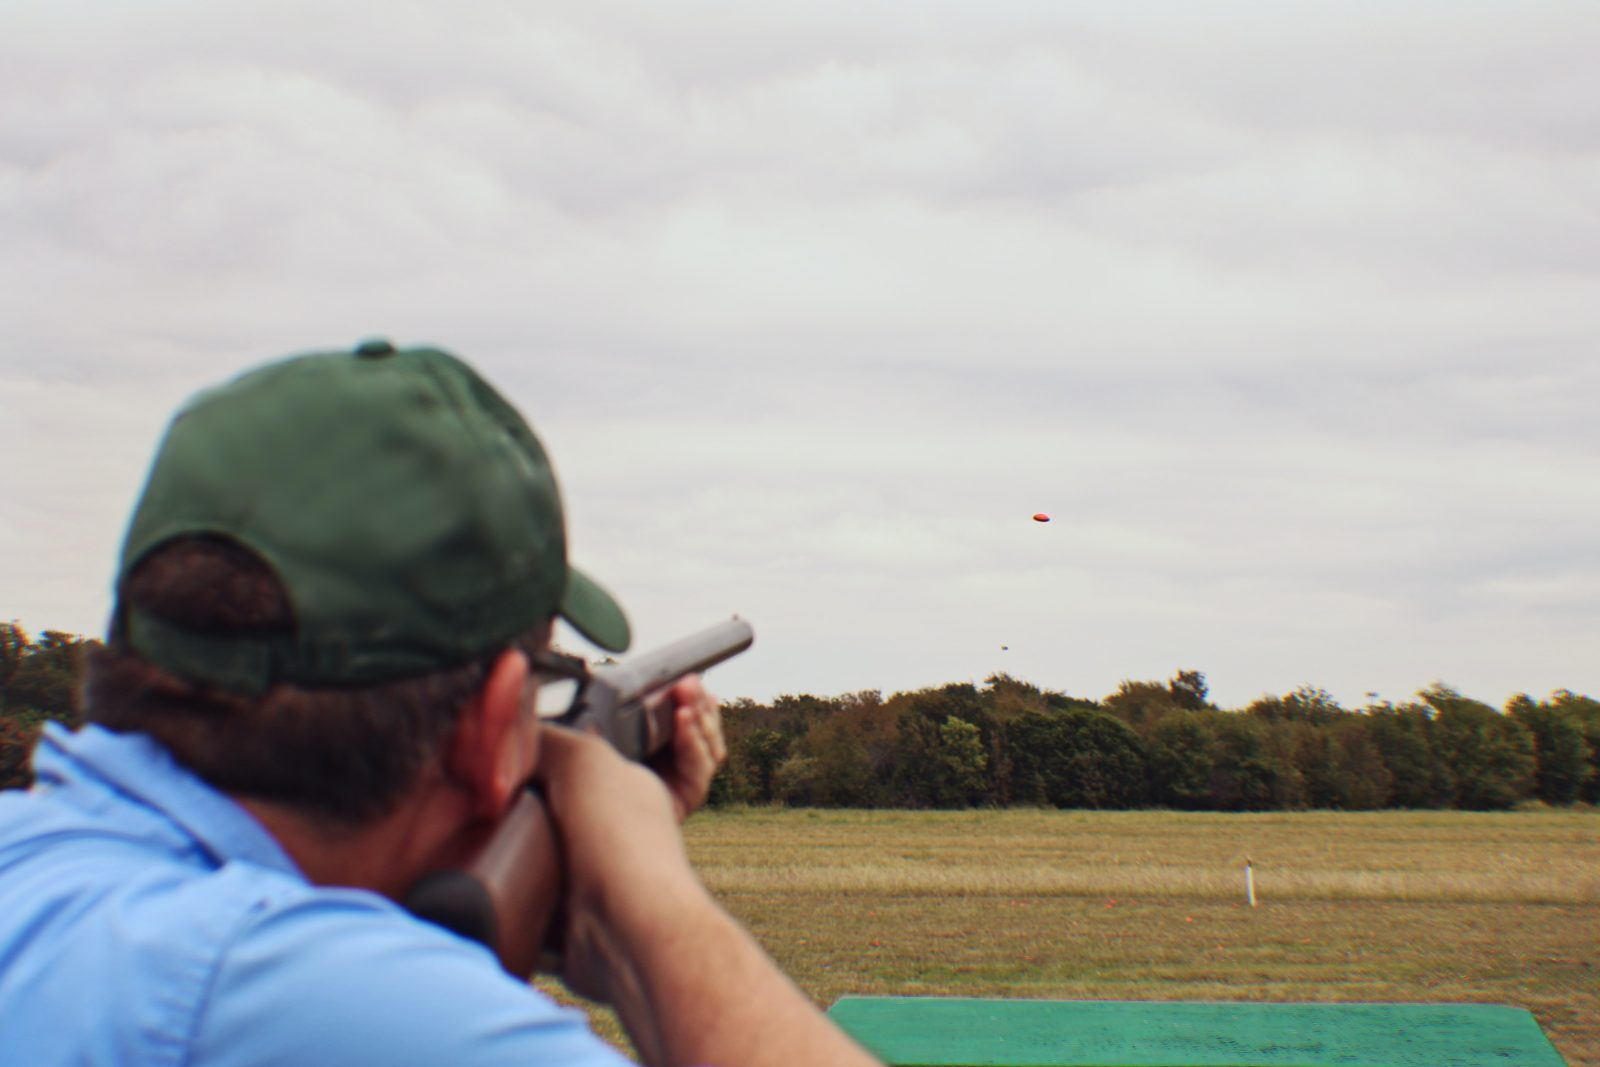 Shooting as a sport trend in the modern world